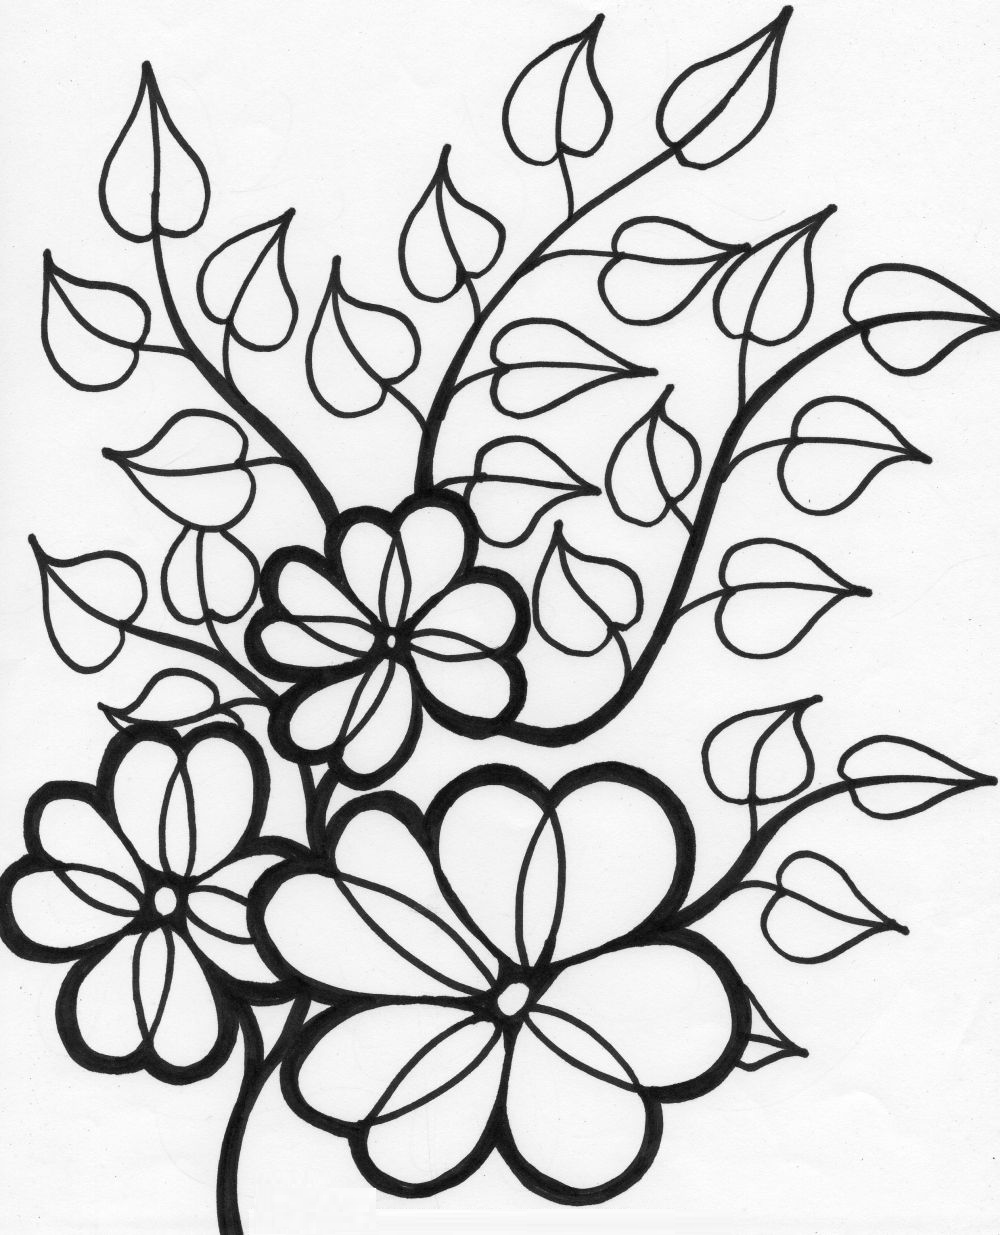 printable flower coloring pages summer flowers printable coloring pages free large images coloring printable flower pages